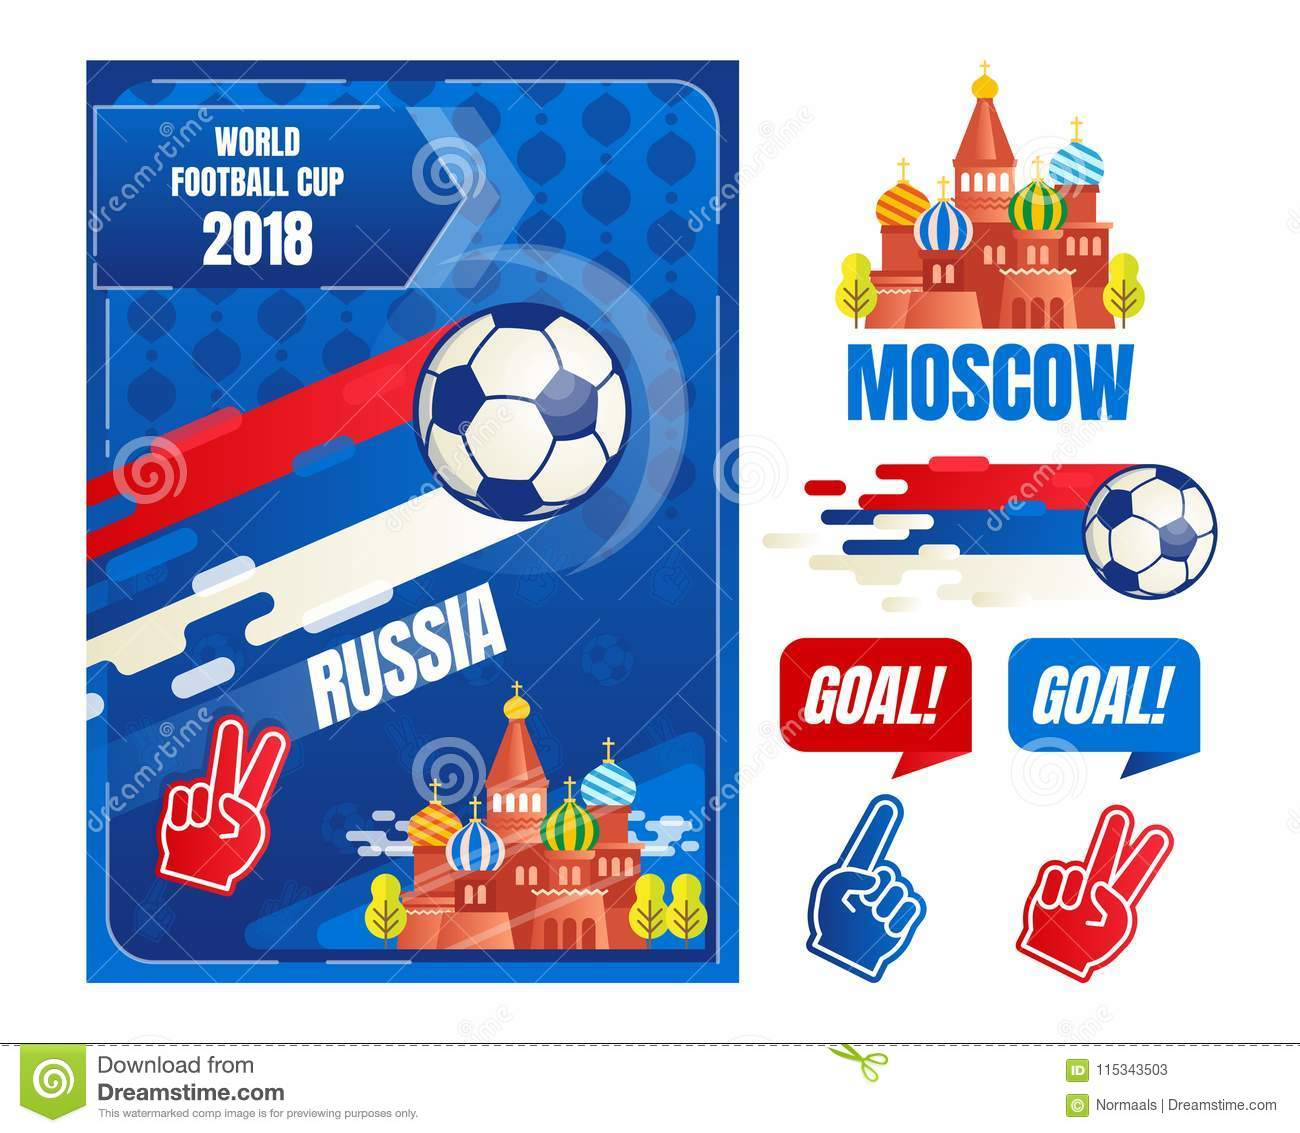 World Football Cup In Russia Poster Design Elements Template Vector Illustration